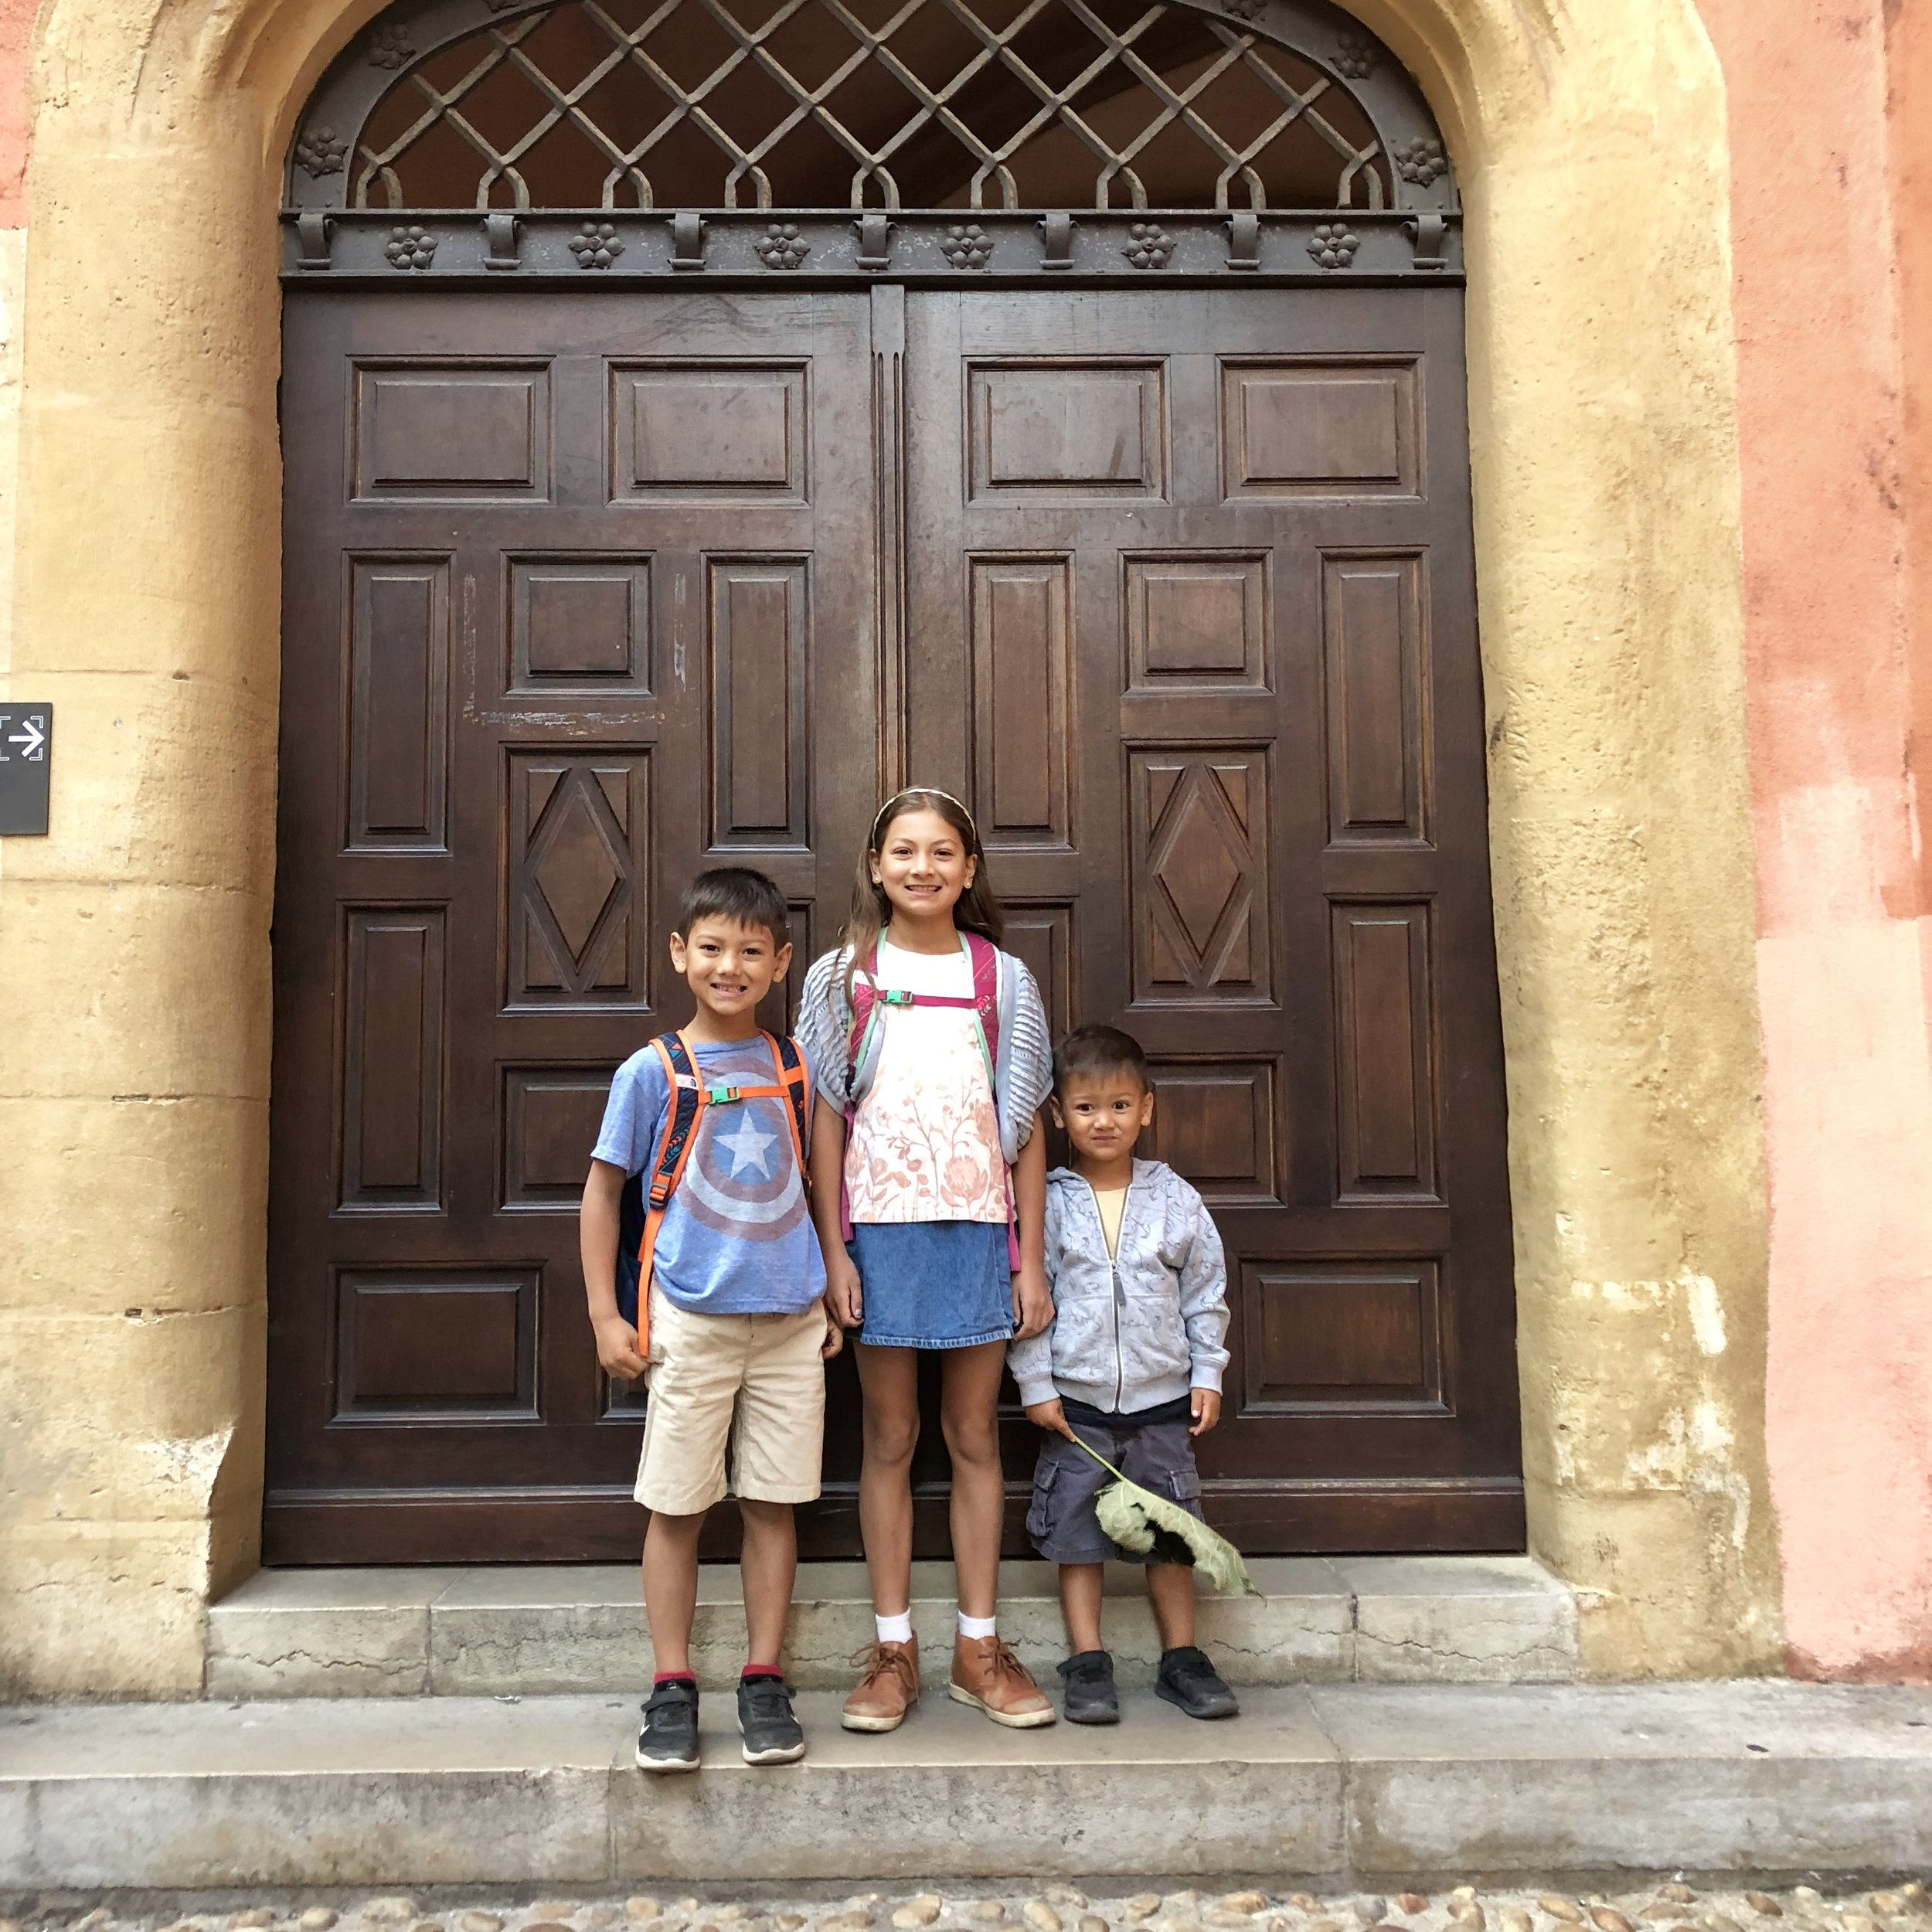 First day of school, September 2018